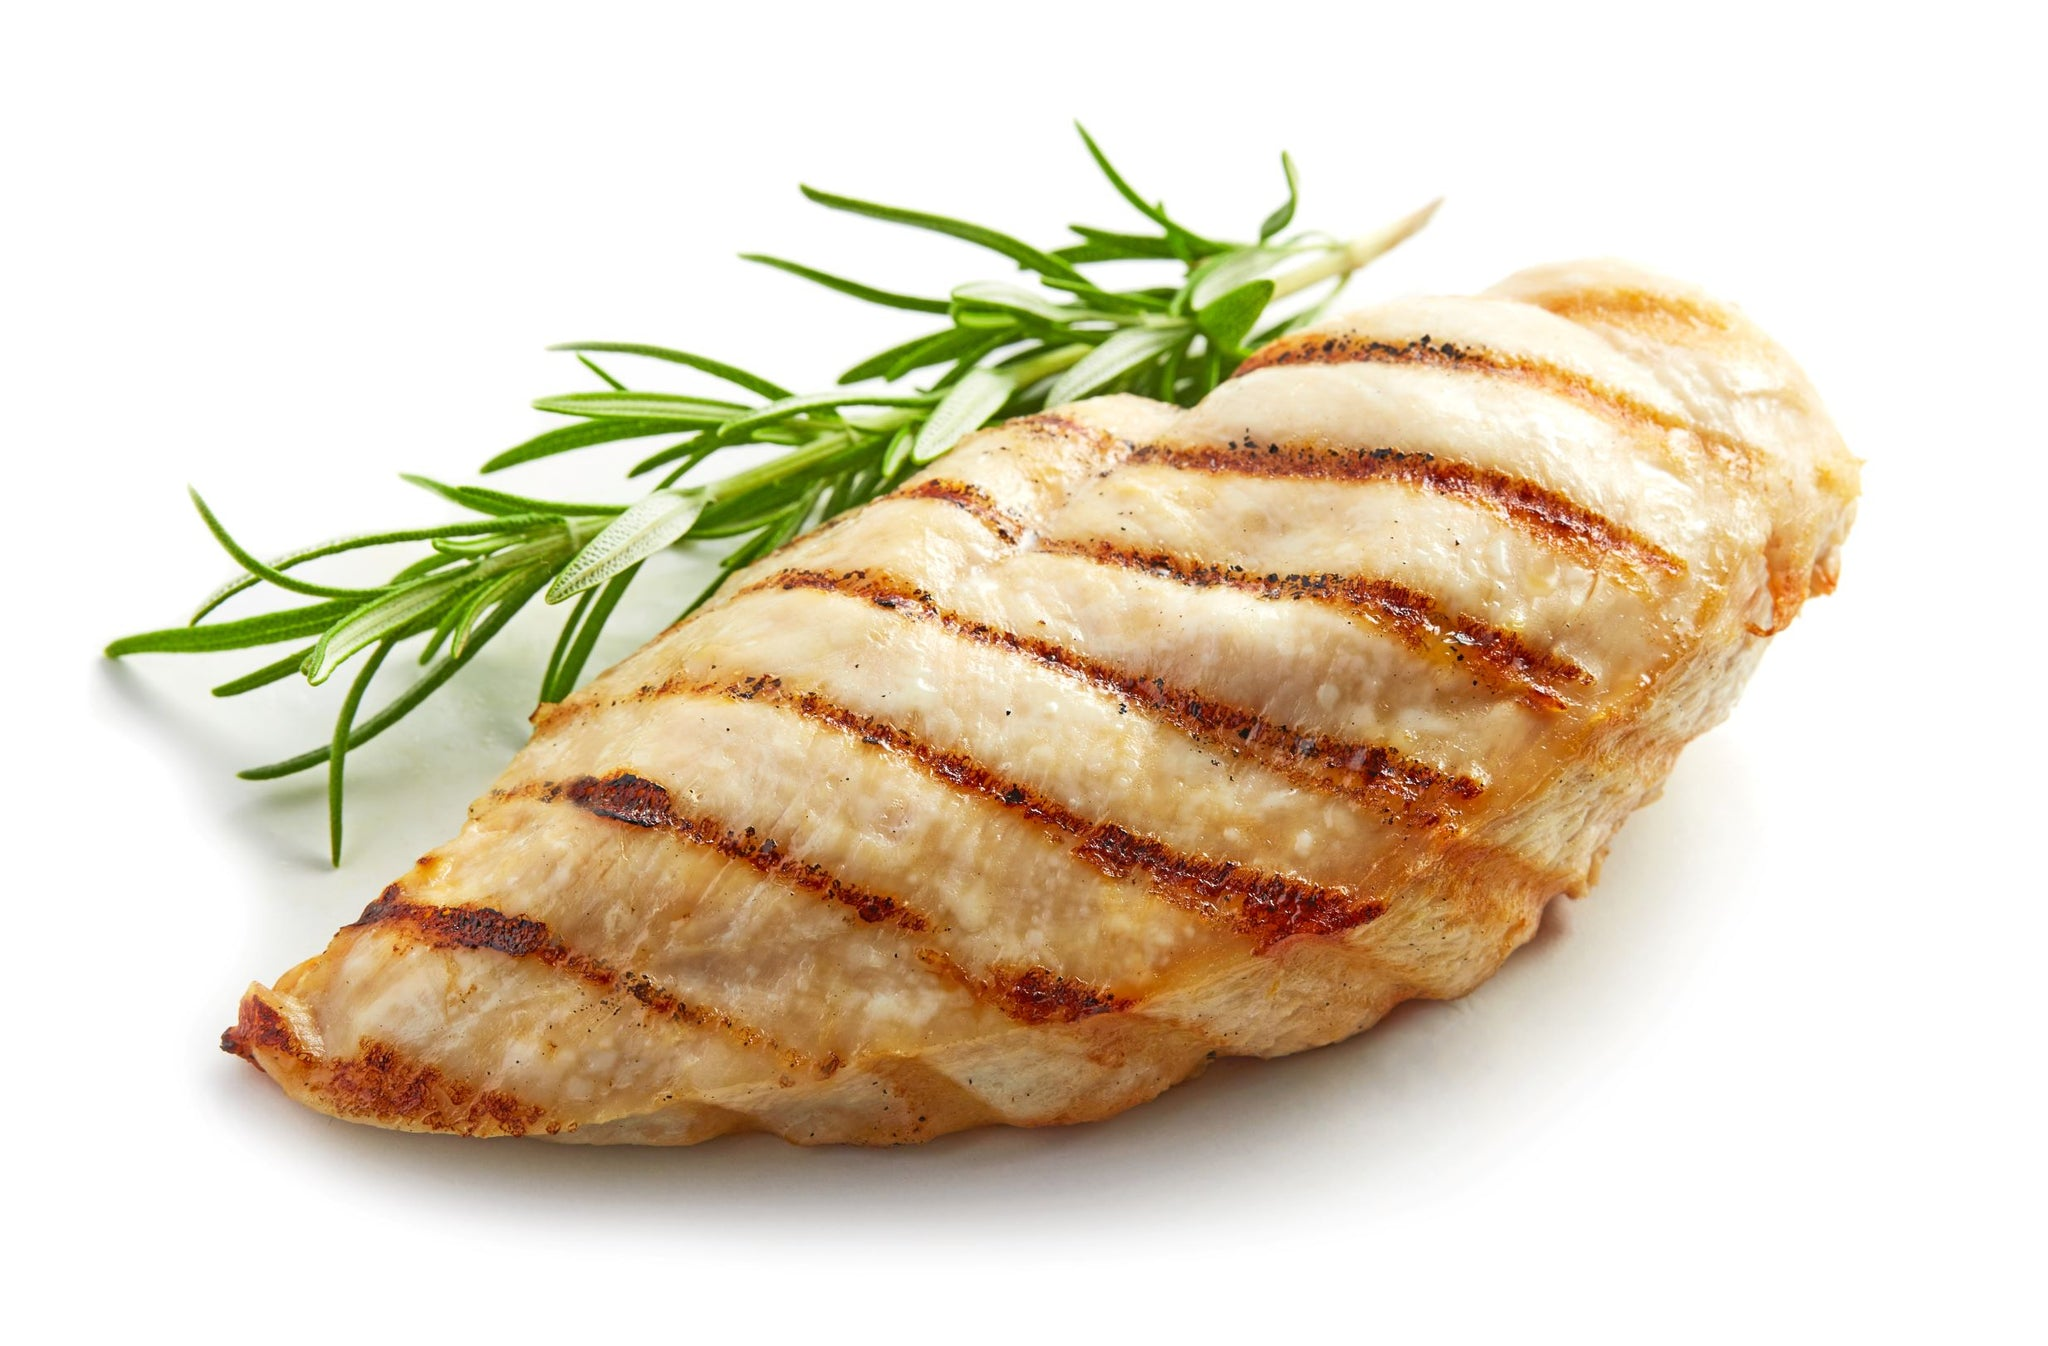 grilled chicken breast (per portion, 1 breast)